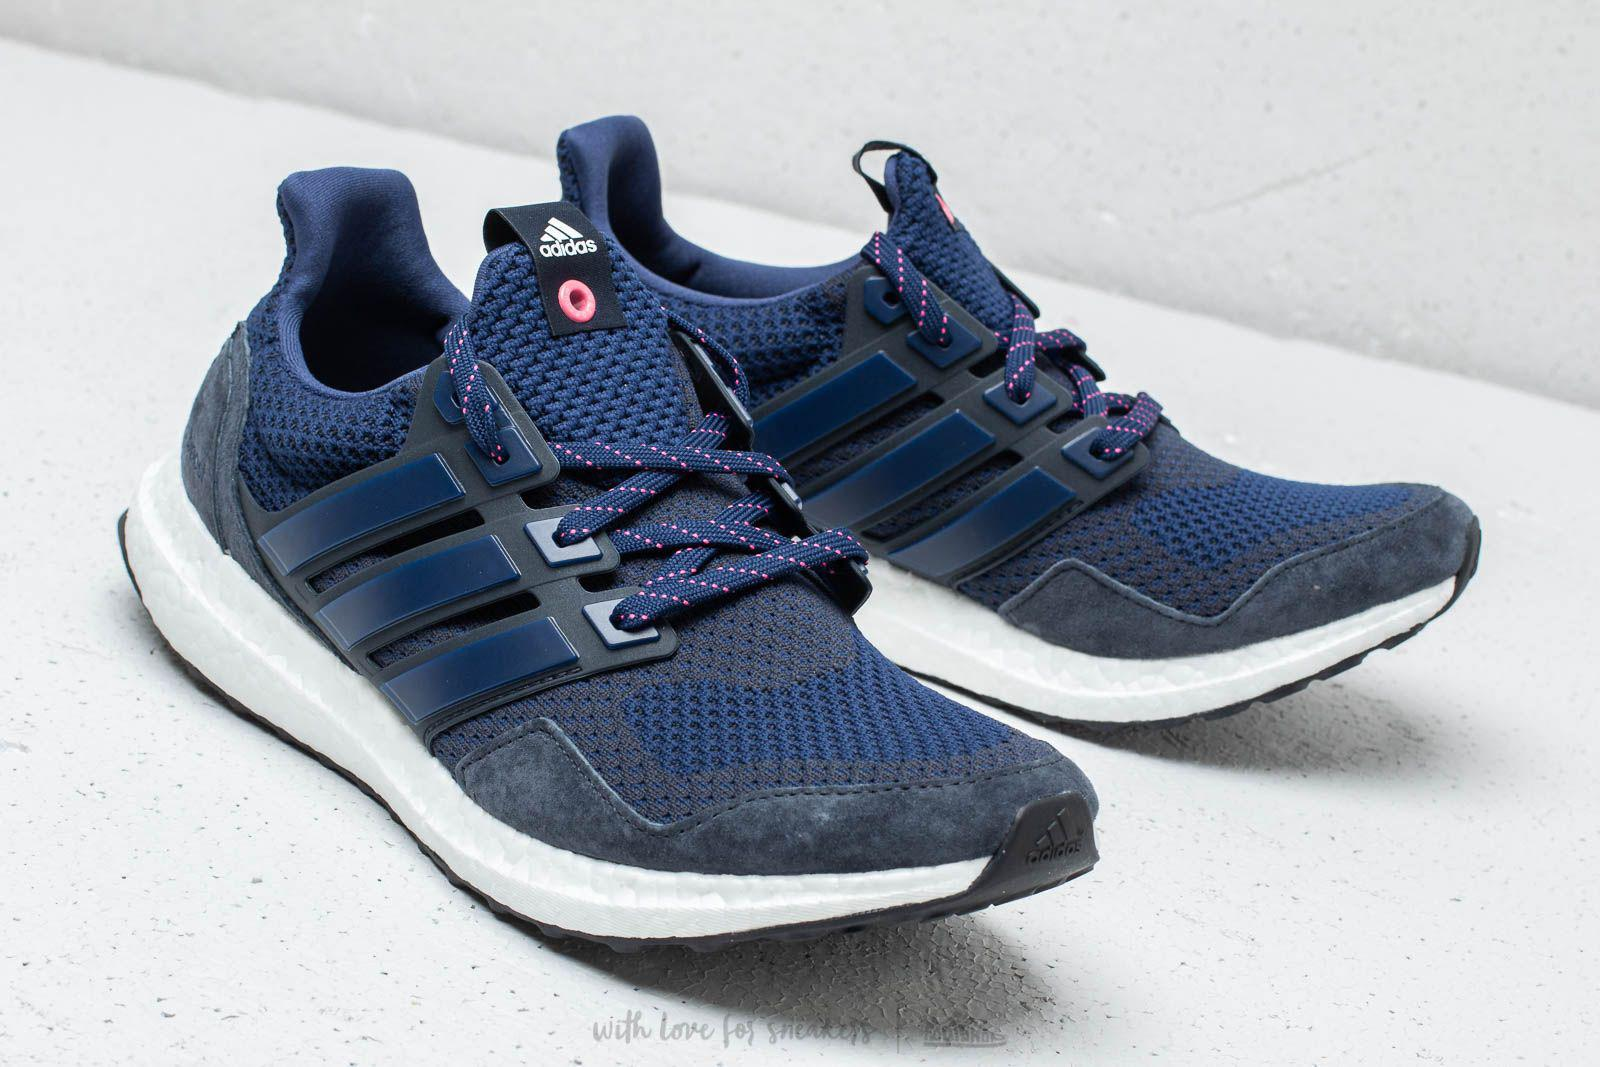 17080a747 Lyst - adidas Originals X Kinfolk Ultraboost Night Navy  Night ...